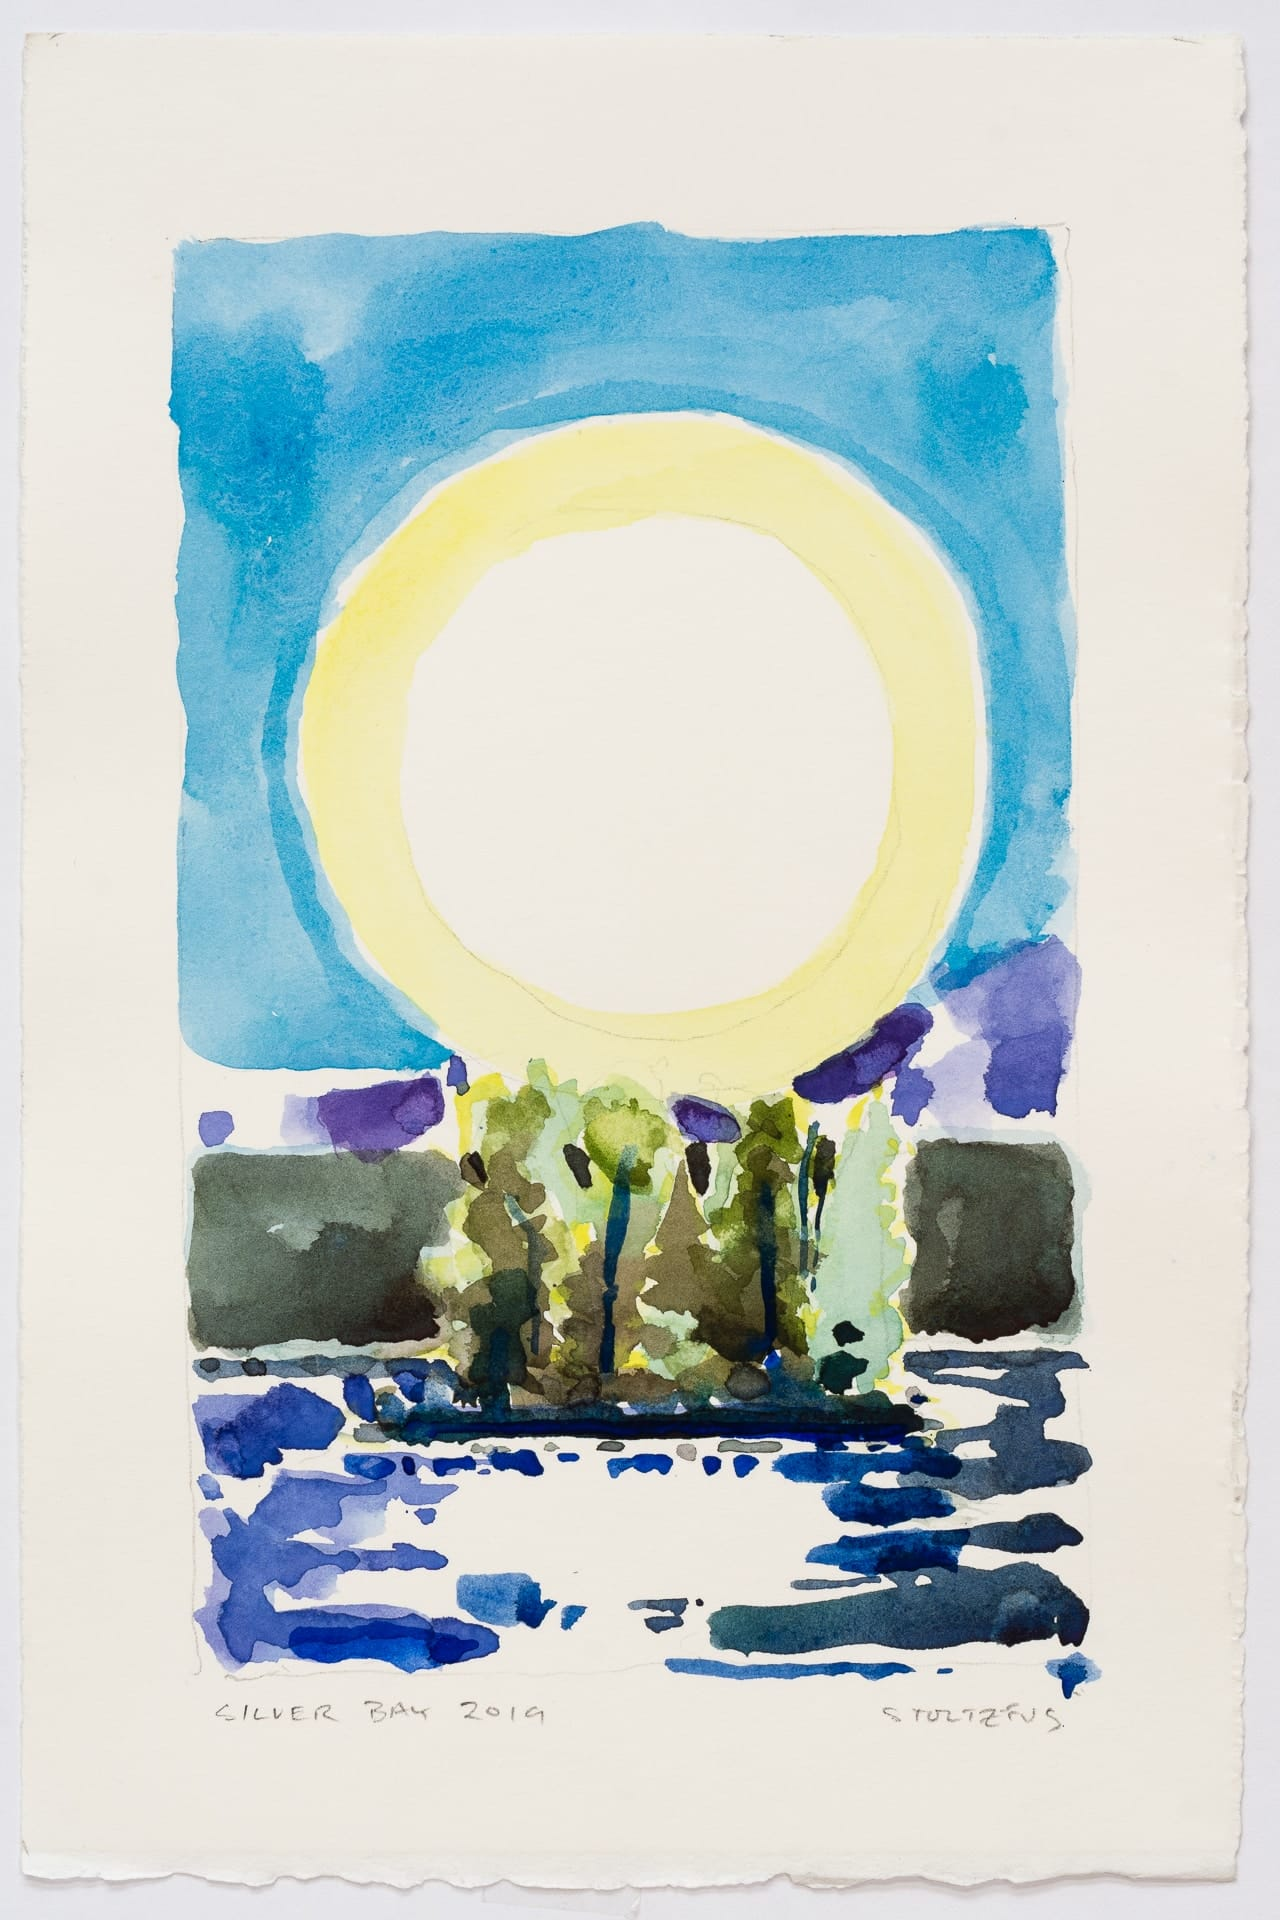 Silver Bay 2019-S7 by Randall Stoltzfus | Watercolor on paper, 11 by 7.5 inches